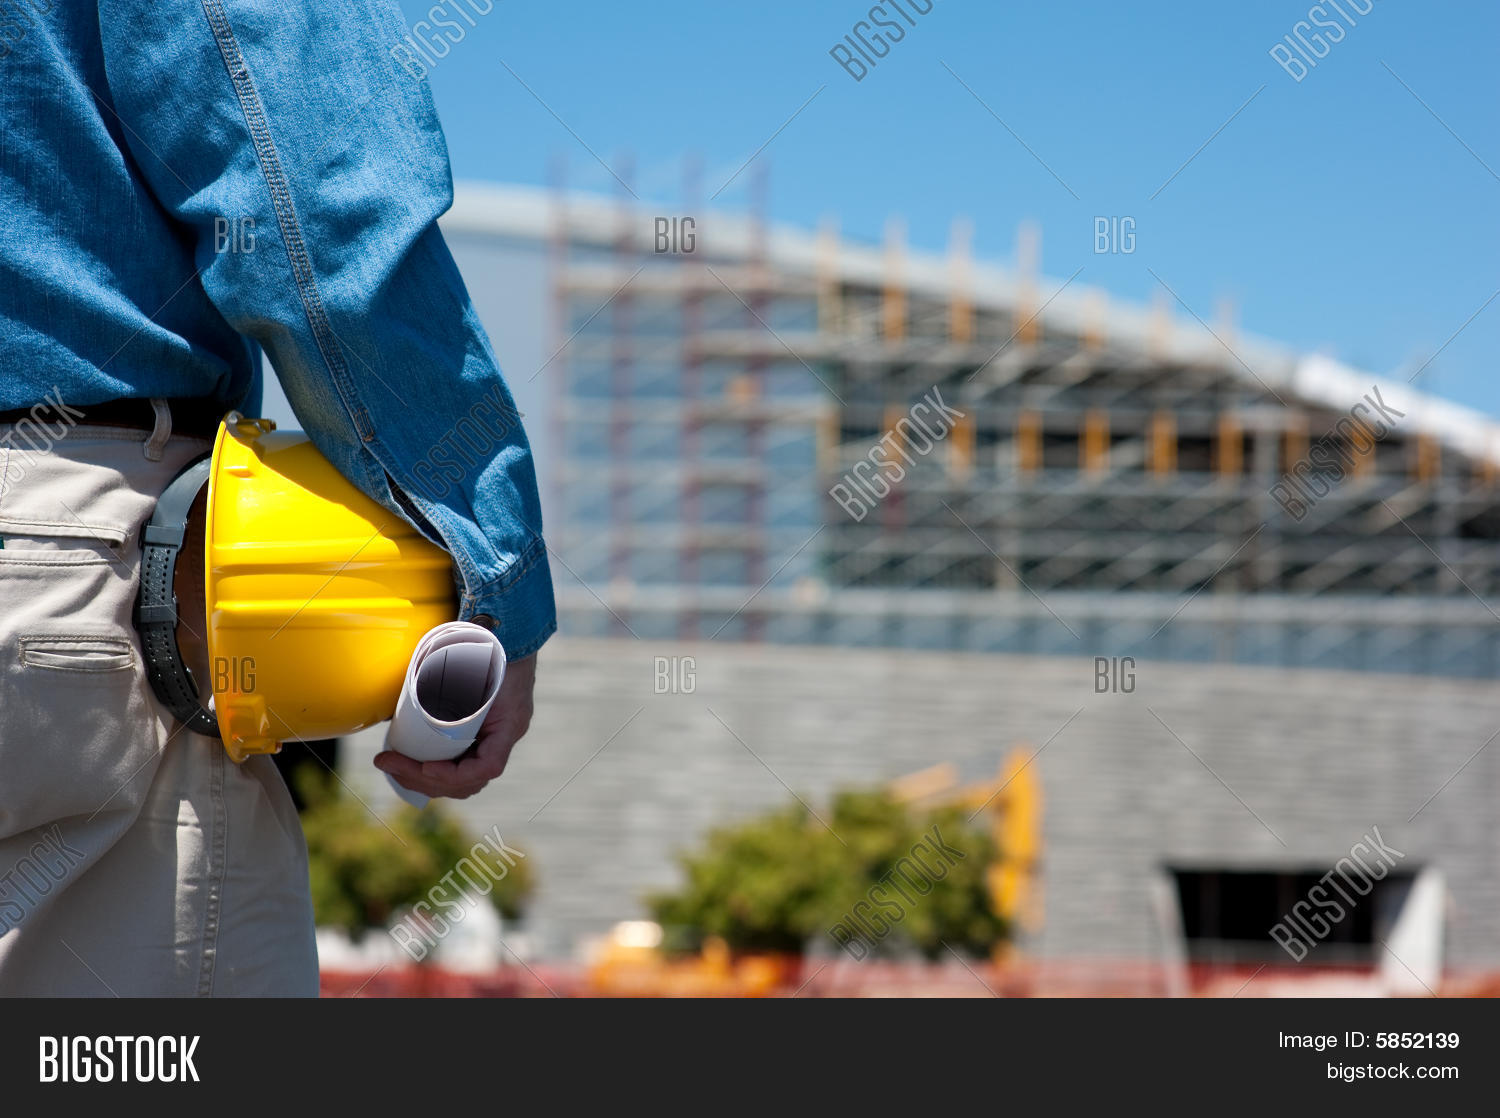 Construction Worker Or Foreman At Construction Site Stock Photo & Stock Images   Bigstock